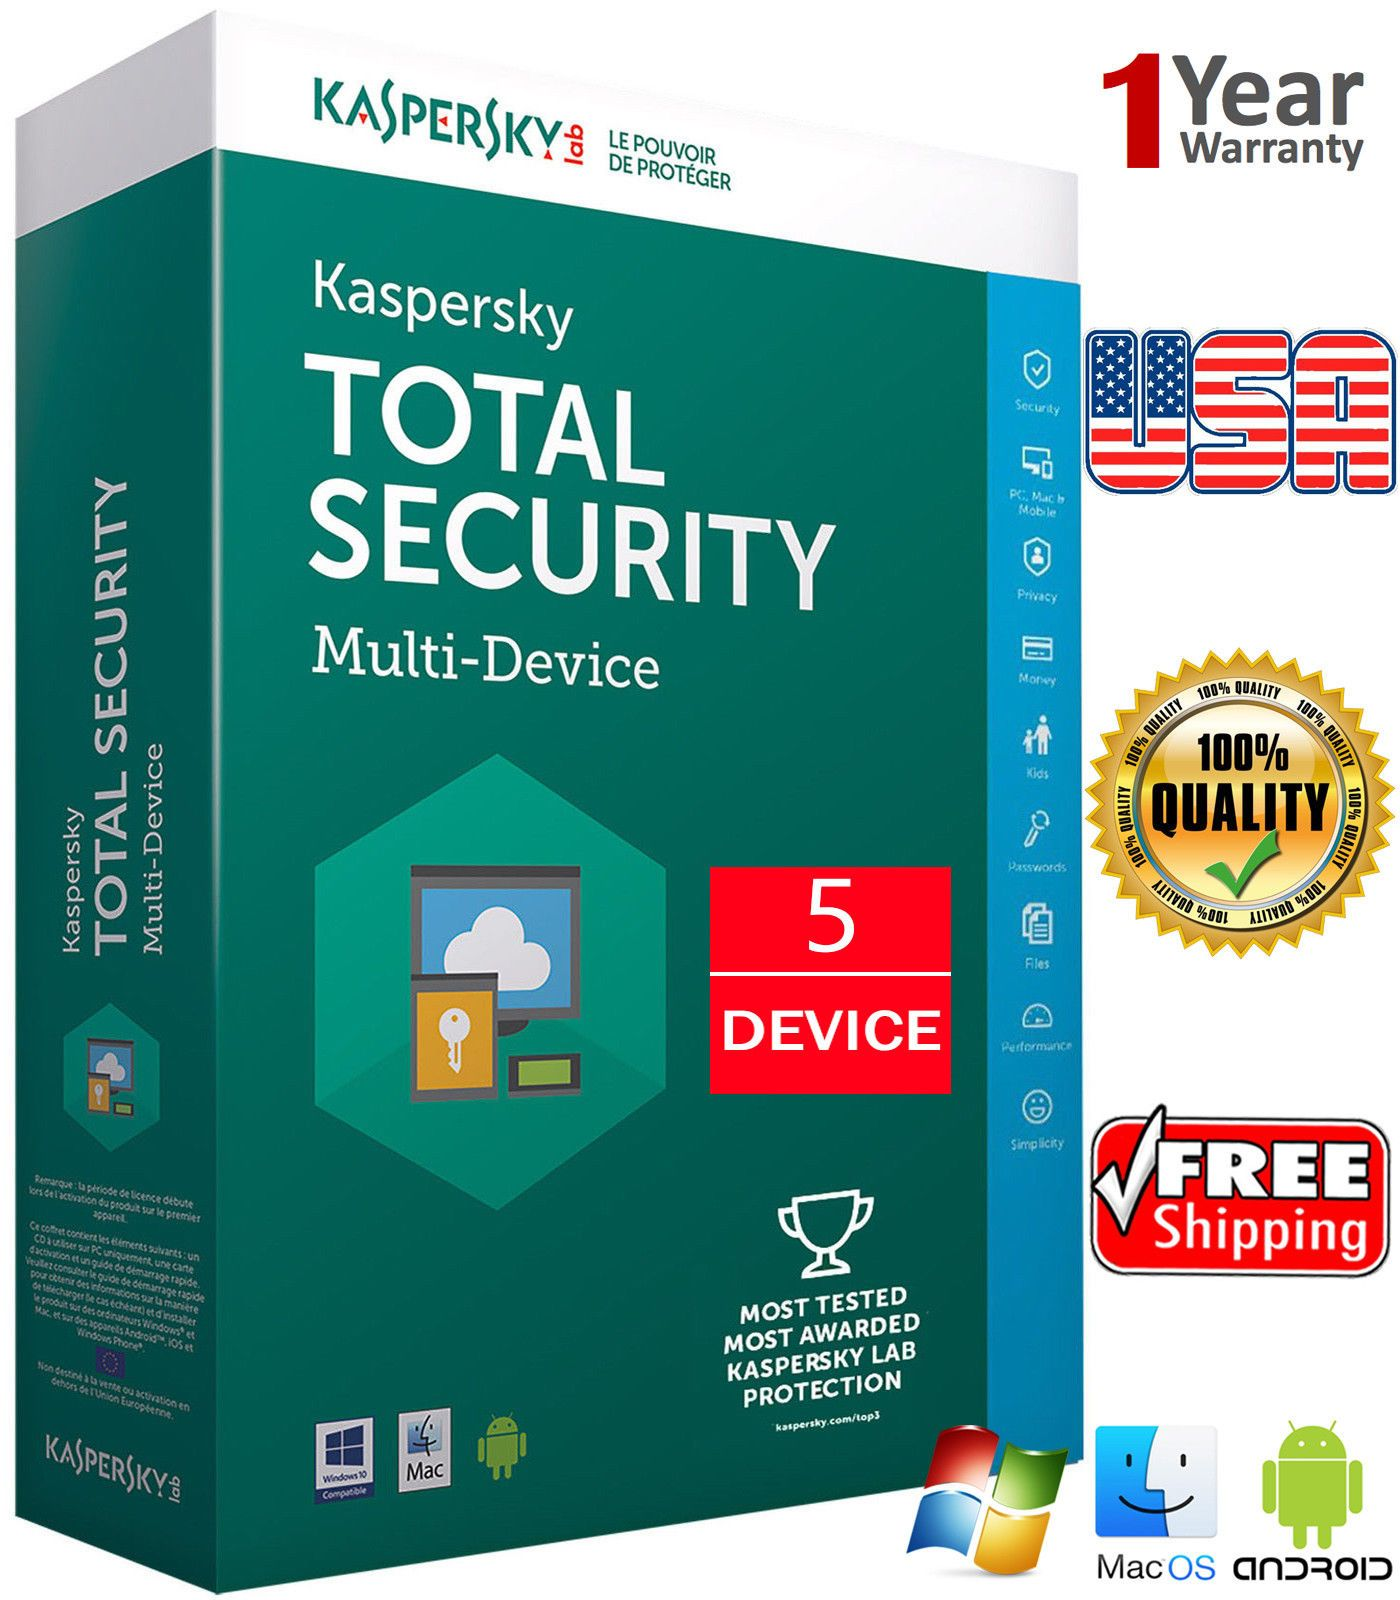 Antivirus and Security 175689: Kaspersky Total Security 2019